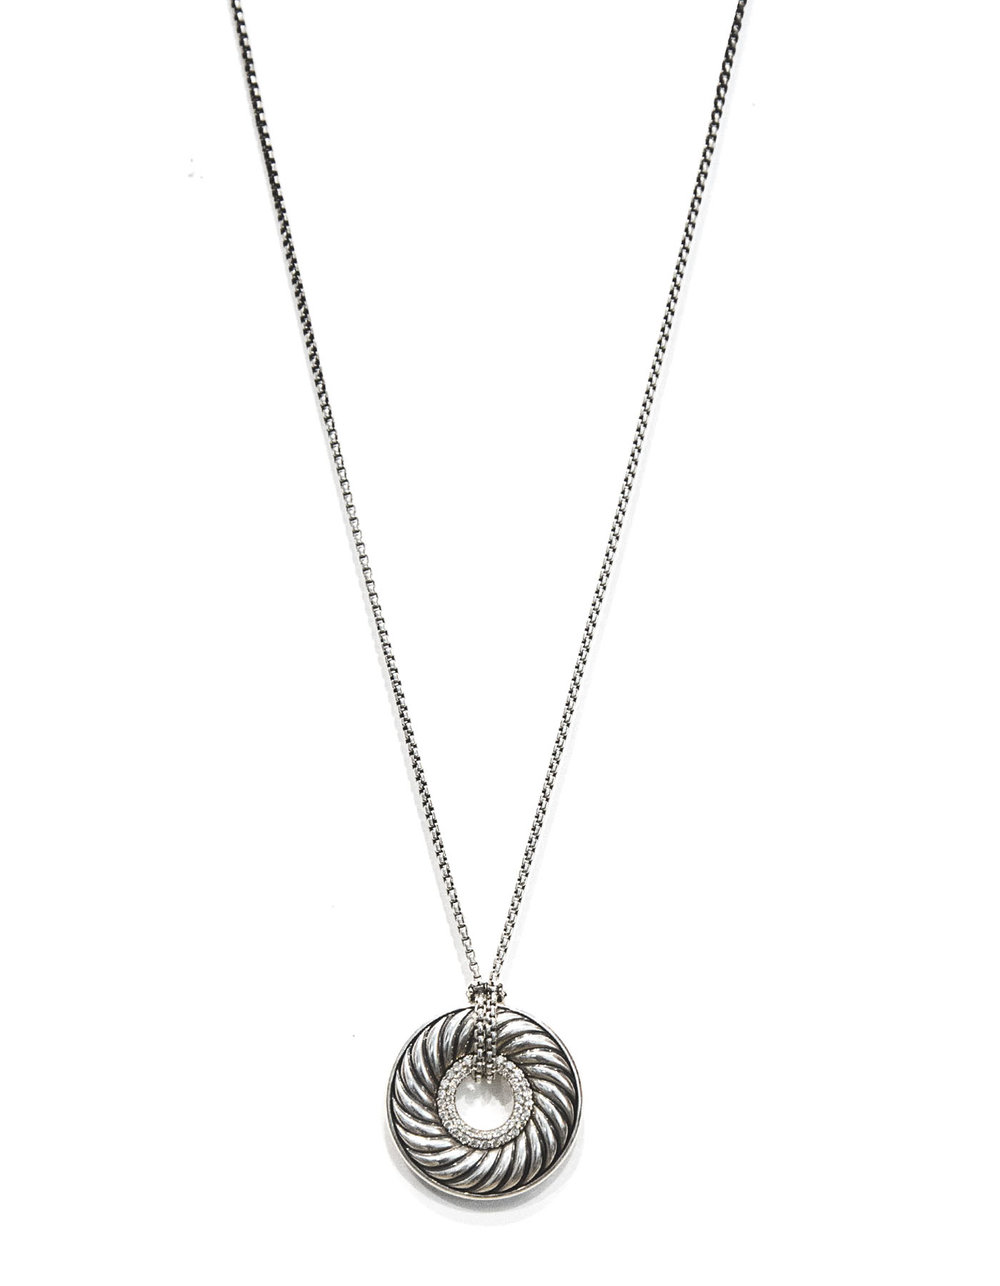 D YURMAN sterling and diamond carved cable circle pendant necklace 7225-103 1.jpg